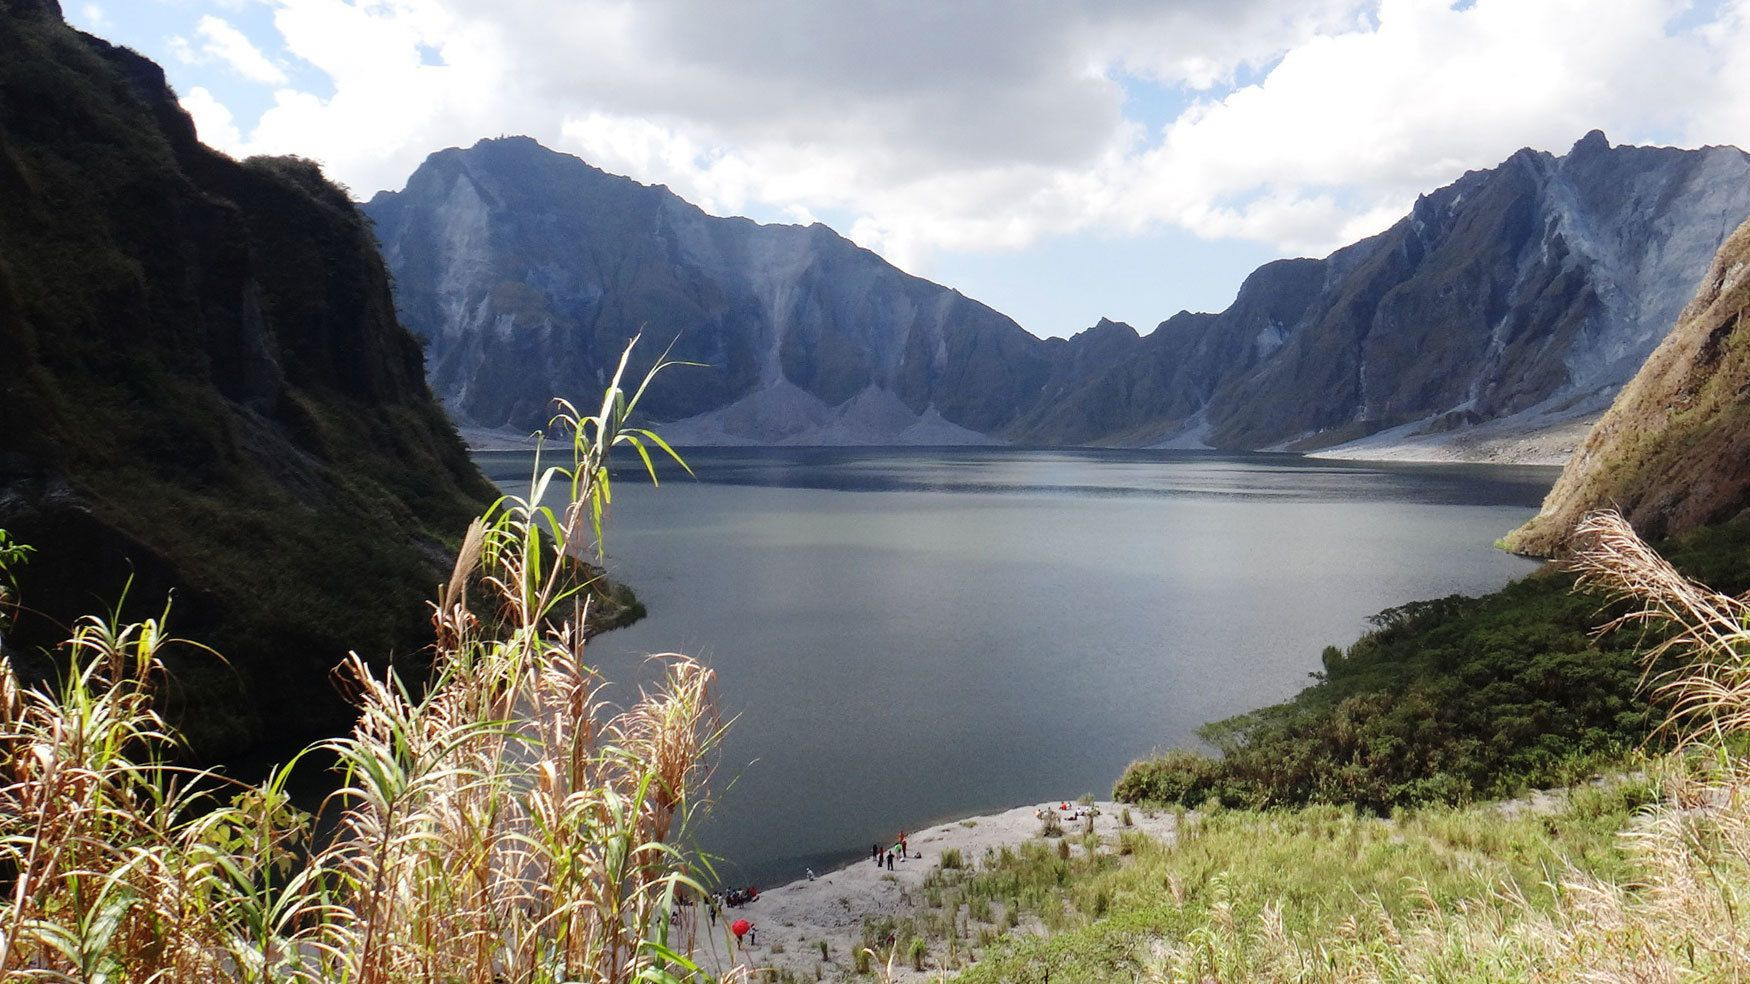 Crater lake at the bottom of Mount Pinatubo in the Philippines